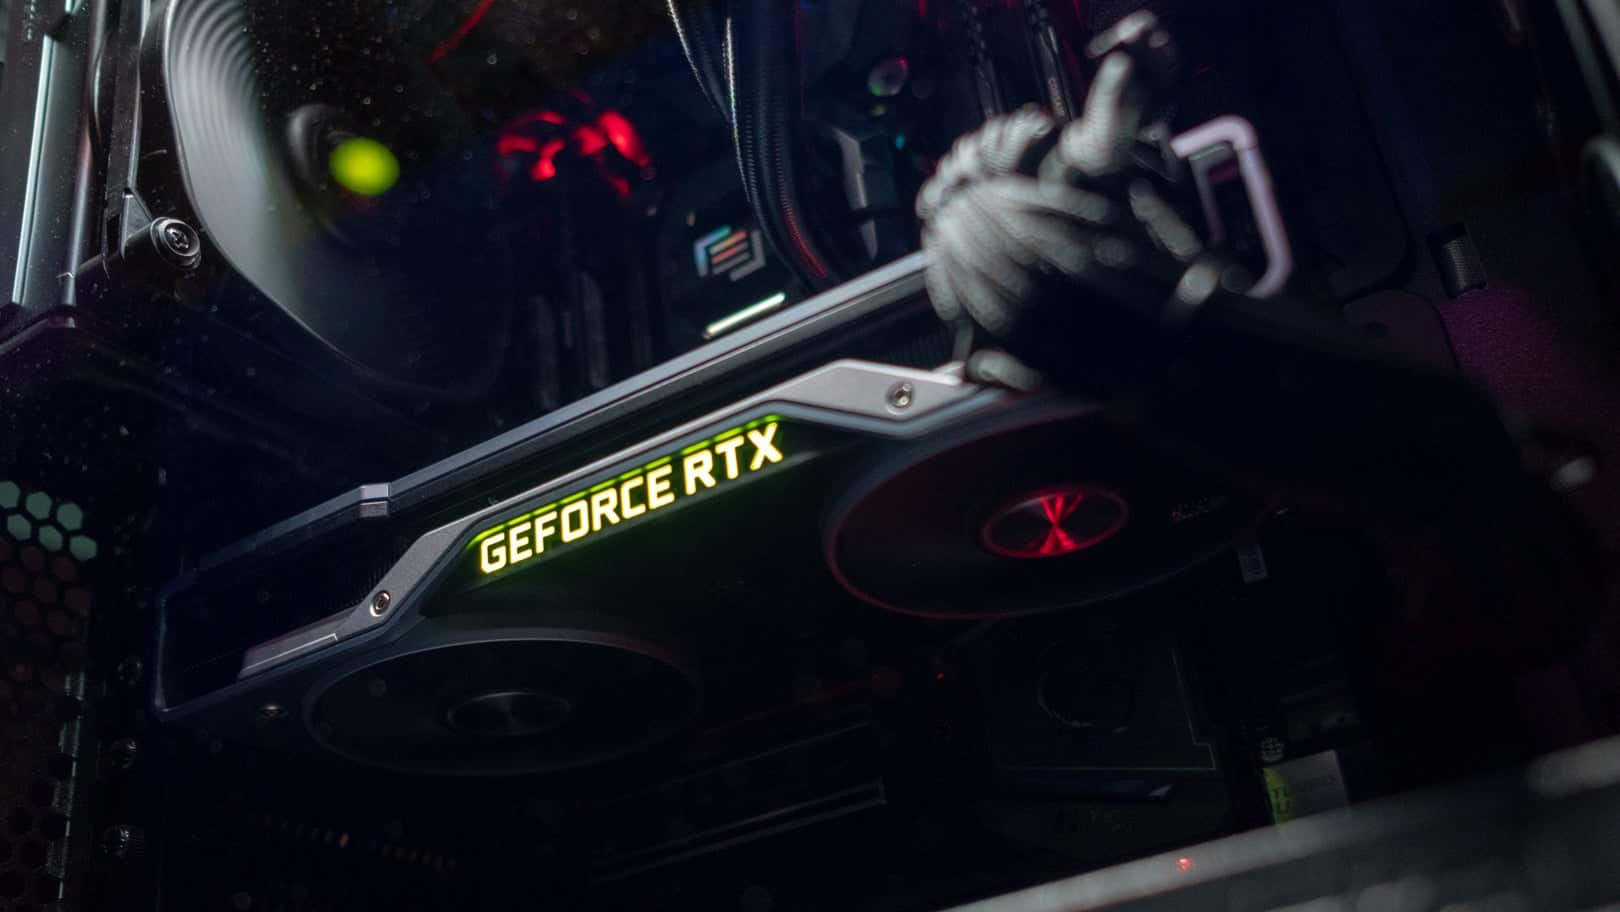 Nvidia RTX 3080, RTX 3070 Specifications Leaked for the First Time - Gizchina.com